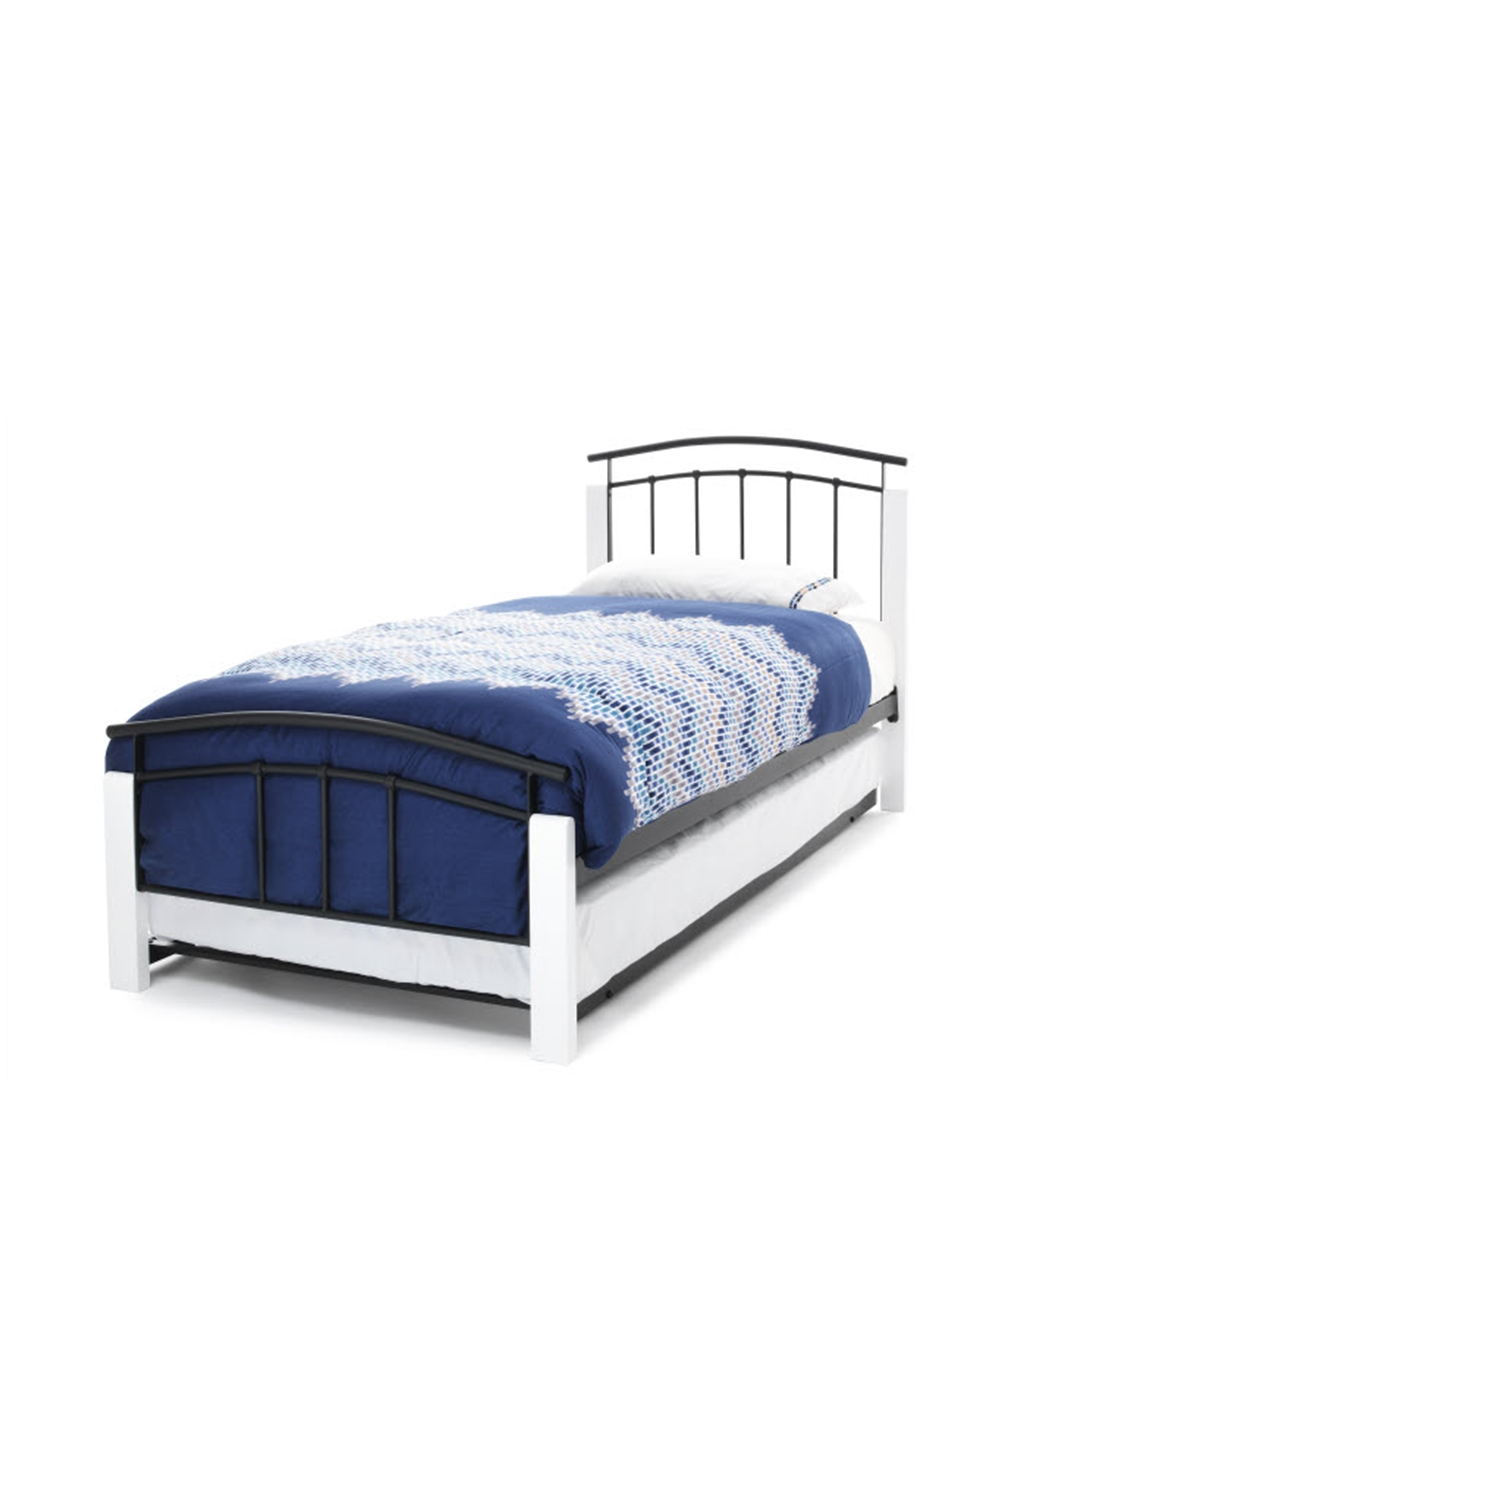 Image of Casa Tetras White Single Guest Bed